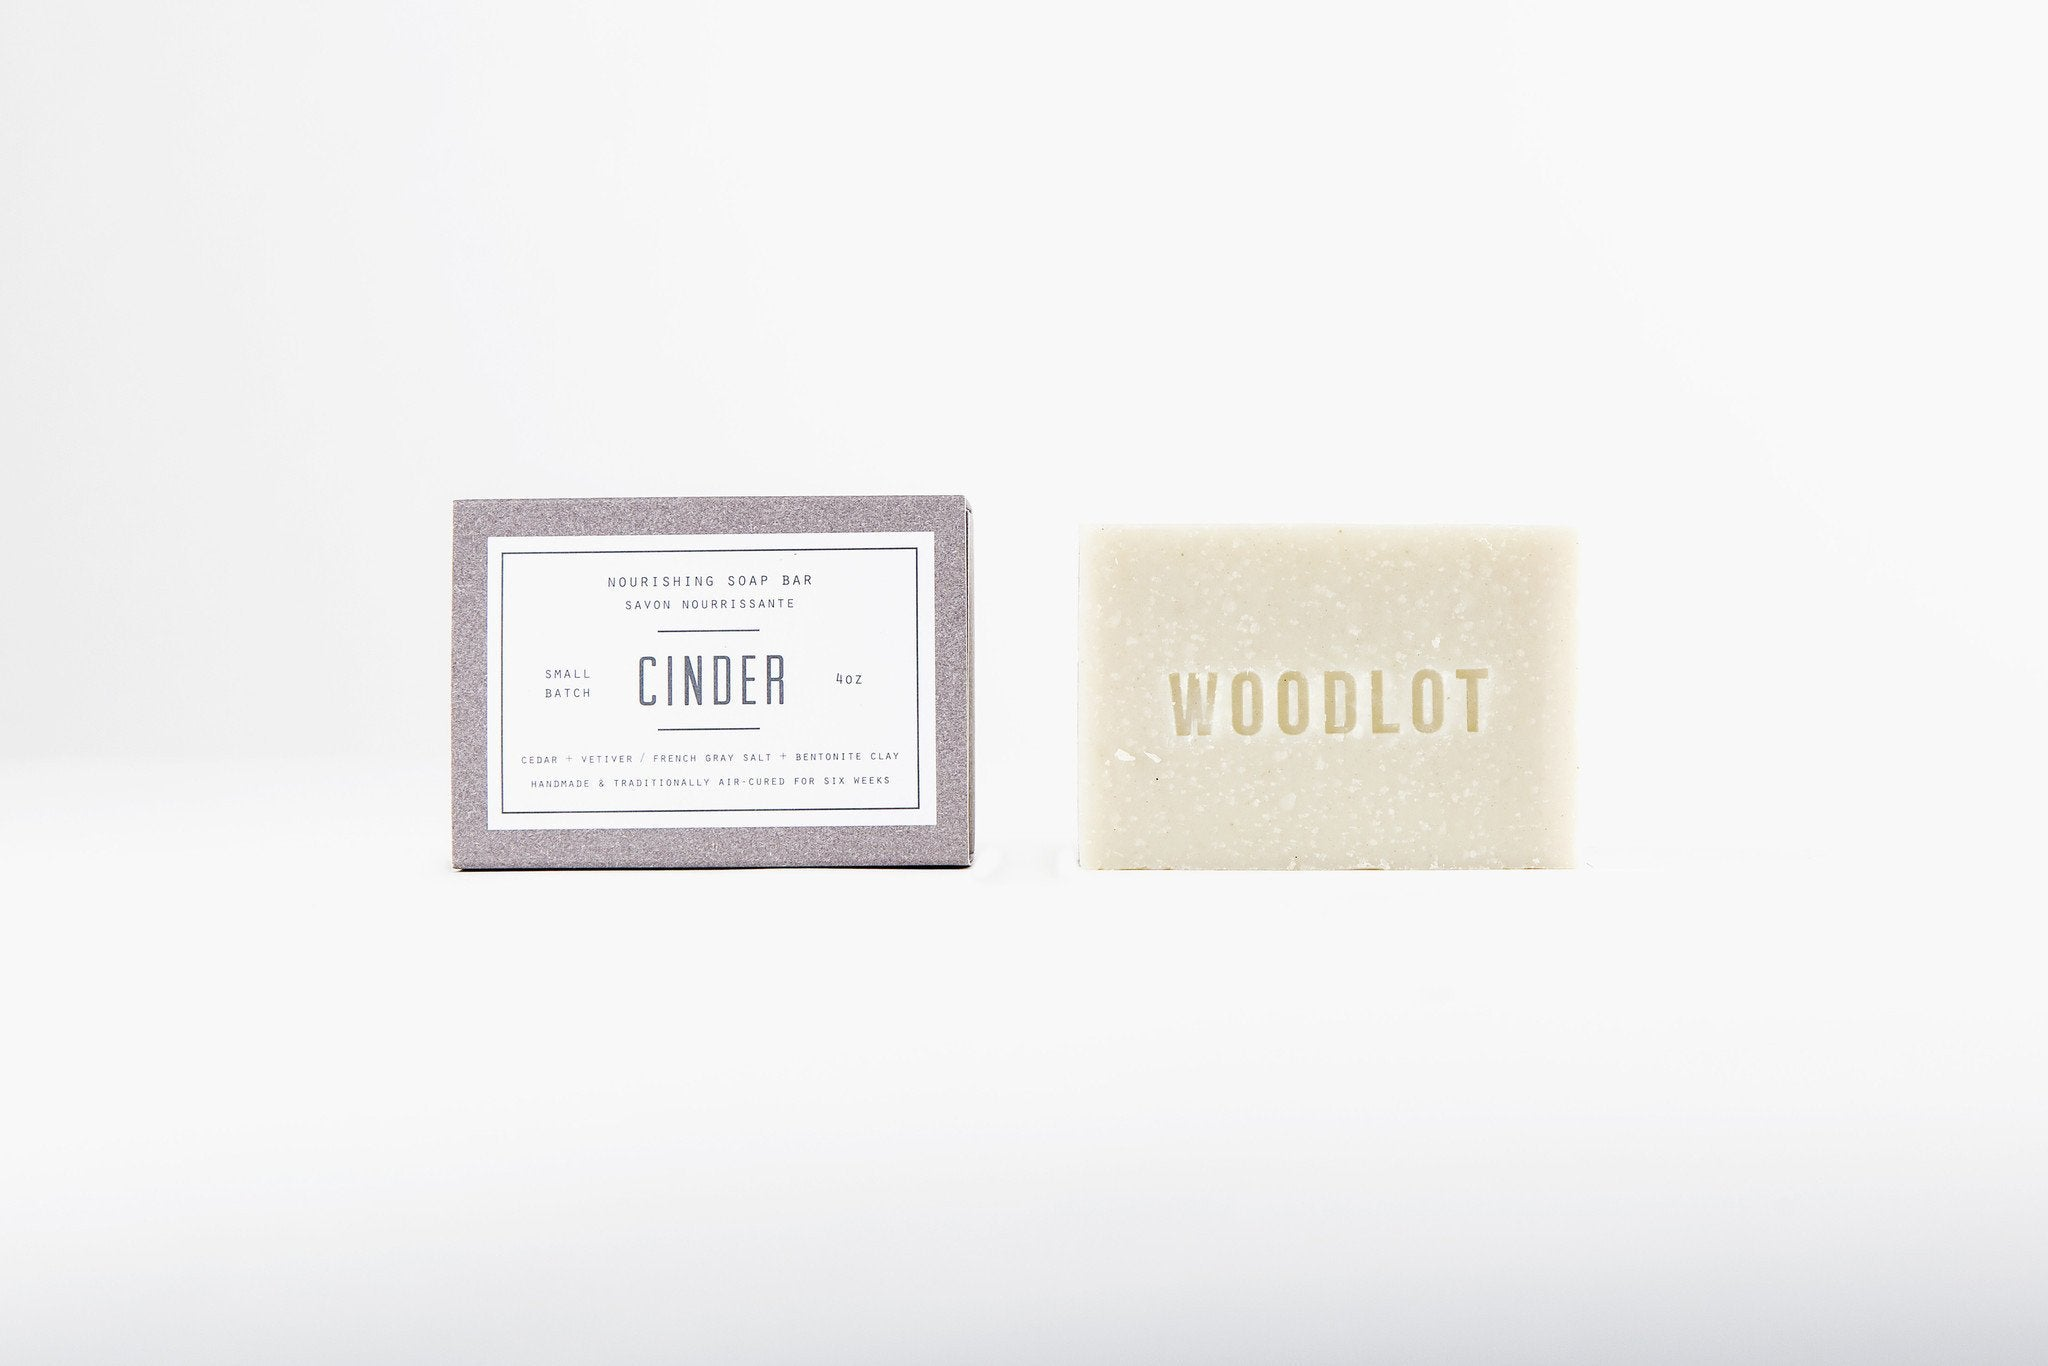 Woodlot Soap Bar